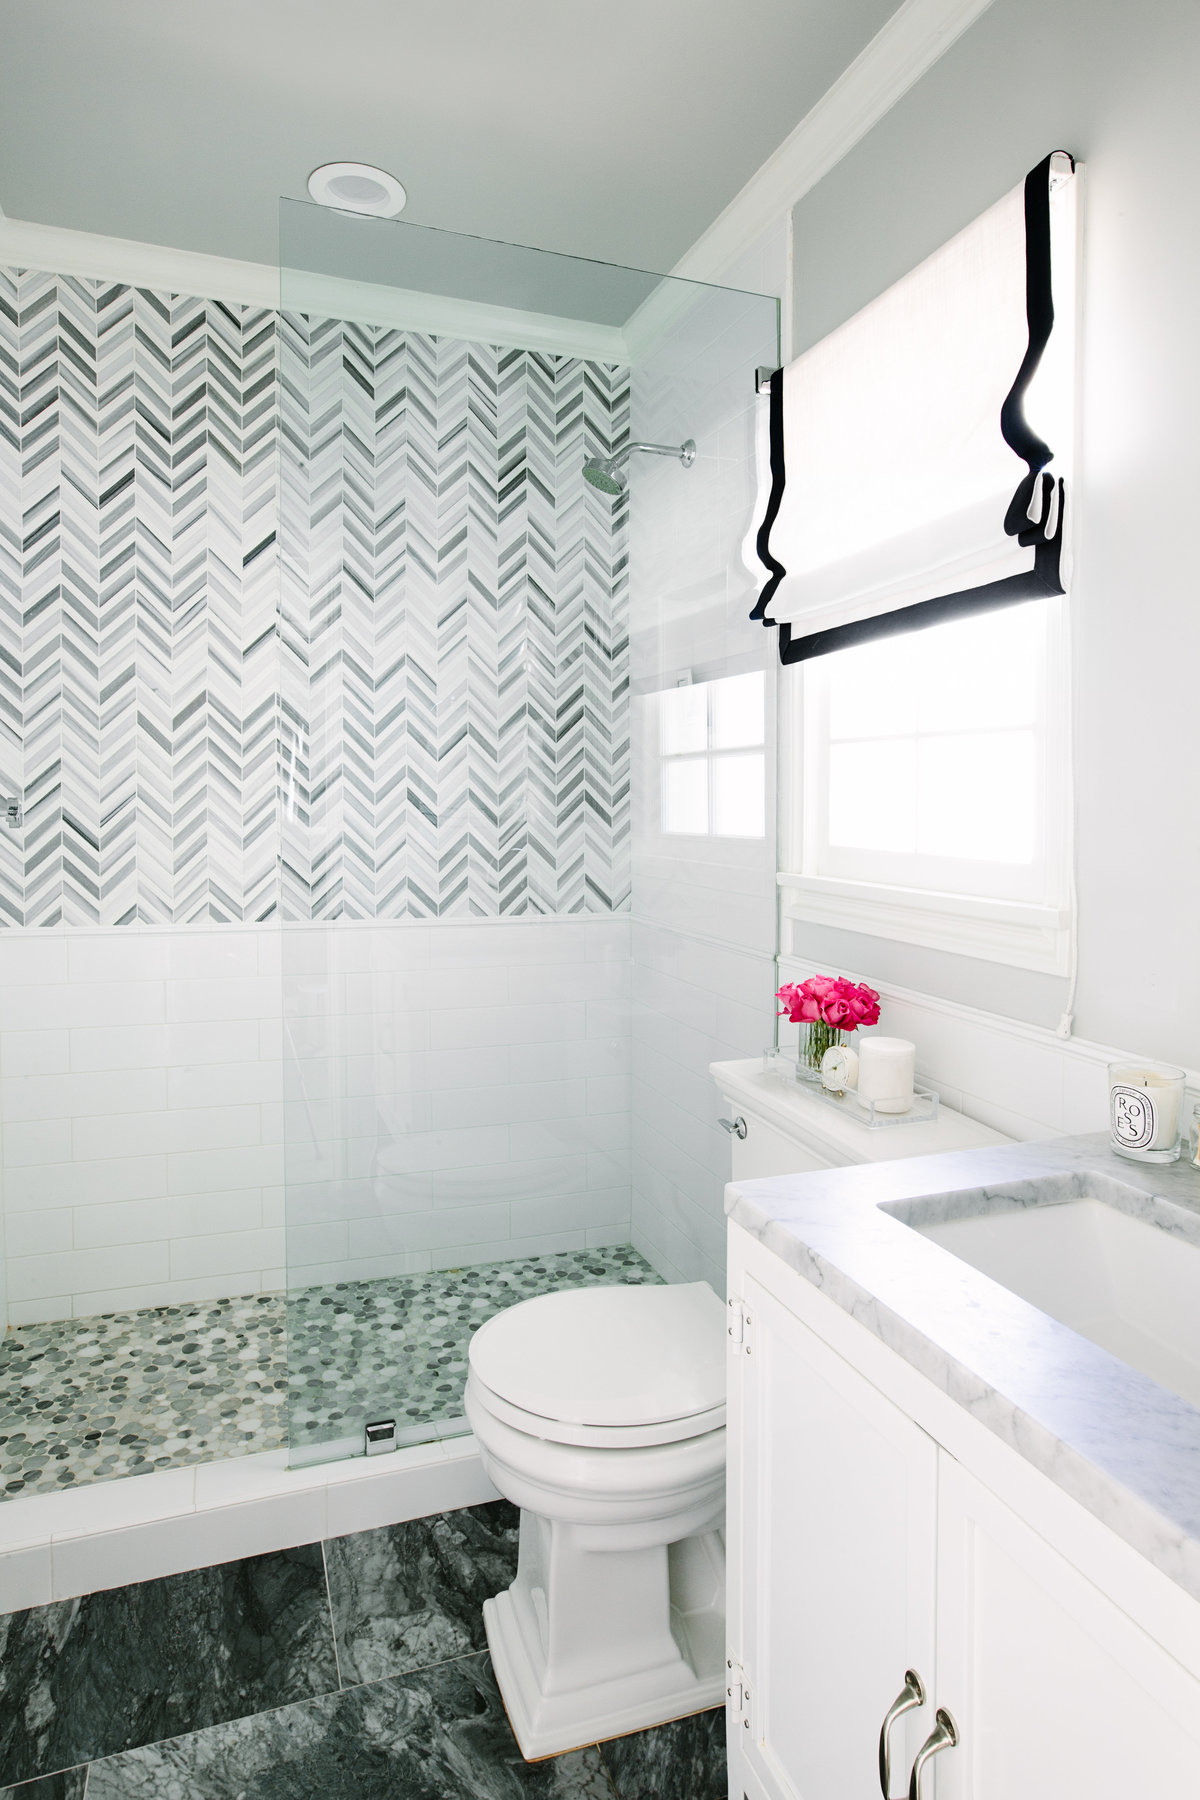 Bathroom with chevron marble tile